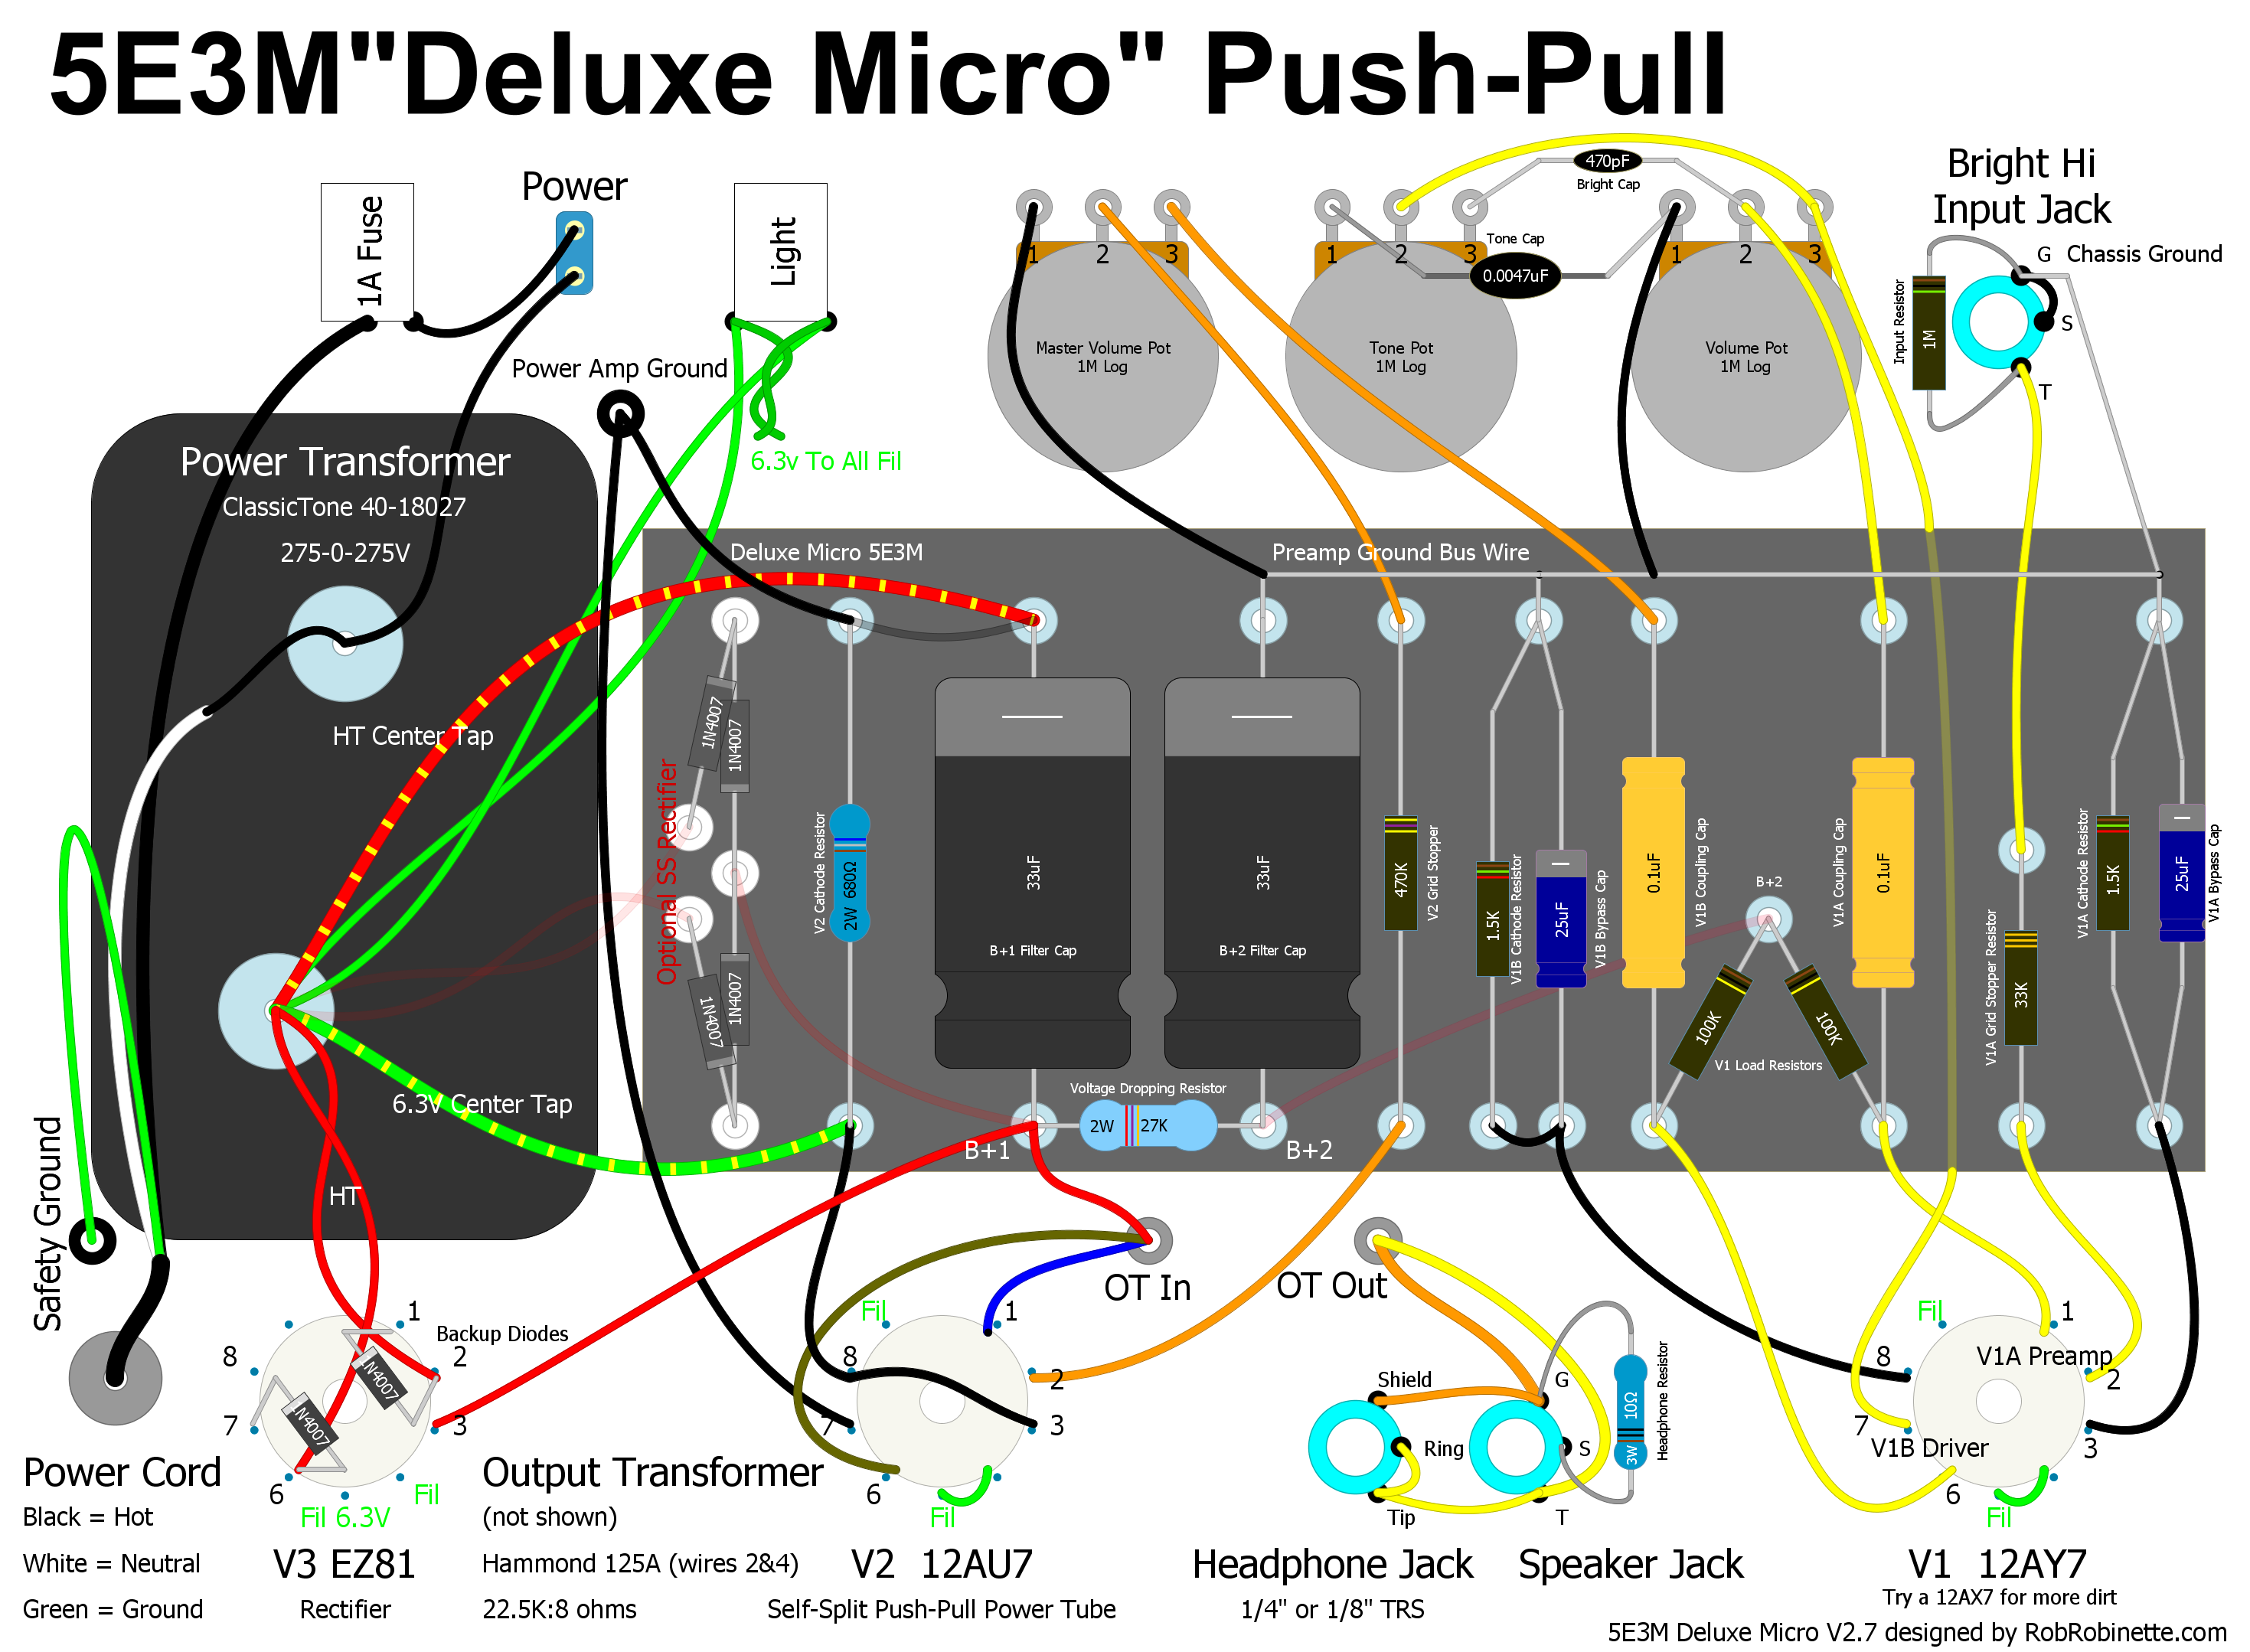 schematic for wiring 2 amplifiers pre internet wire diagram for a home deluxe micro deluxe micro push pull deluxe microhtm schematic for wiring 2 amplifiers schematic for wiring 2 amplifiers